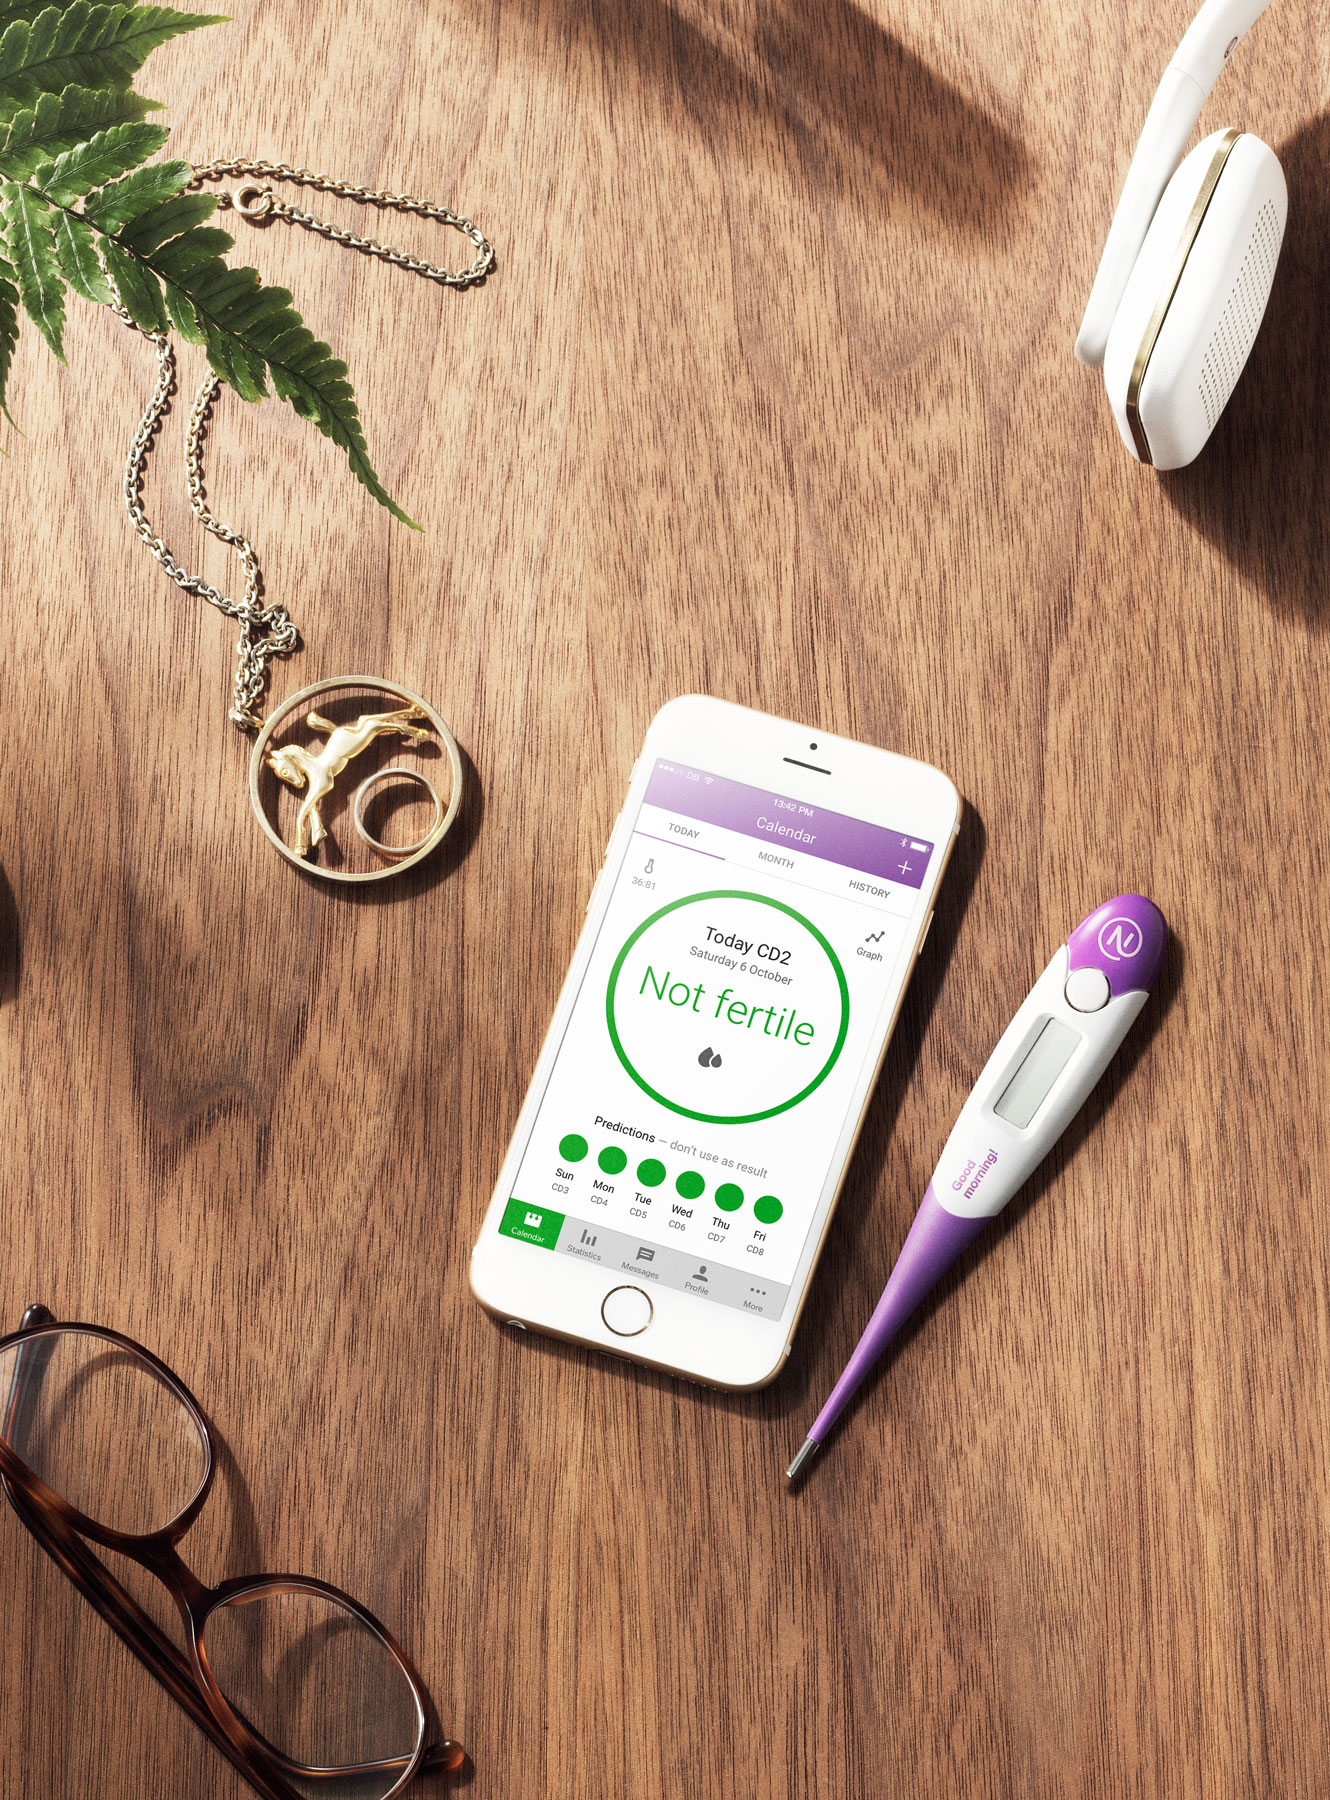 Birth Control Method Contraceptive App - Natural Cycles